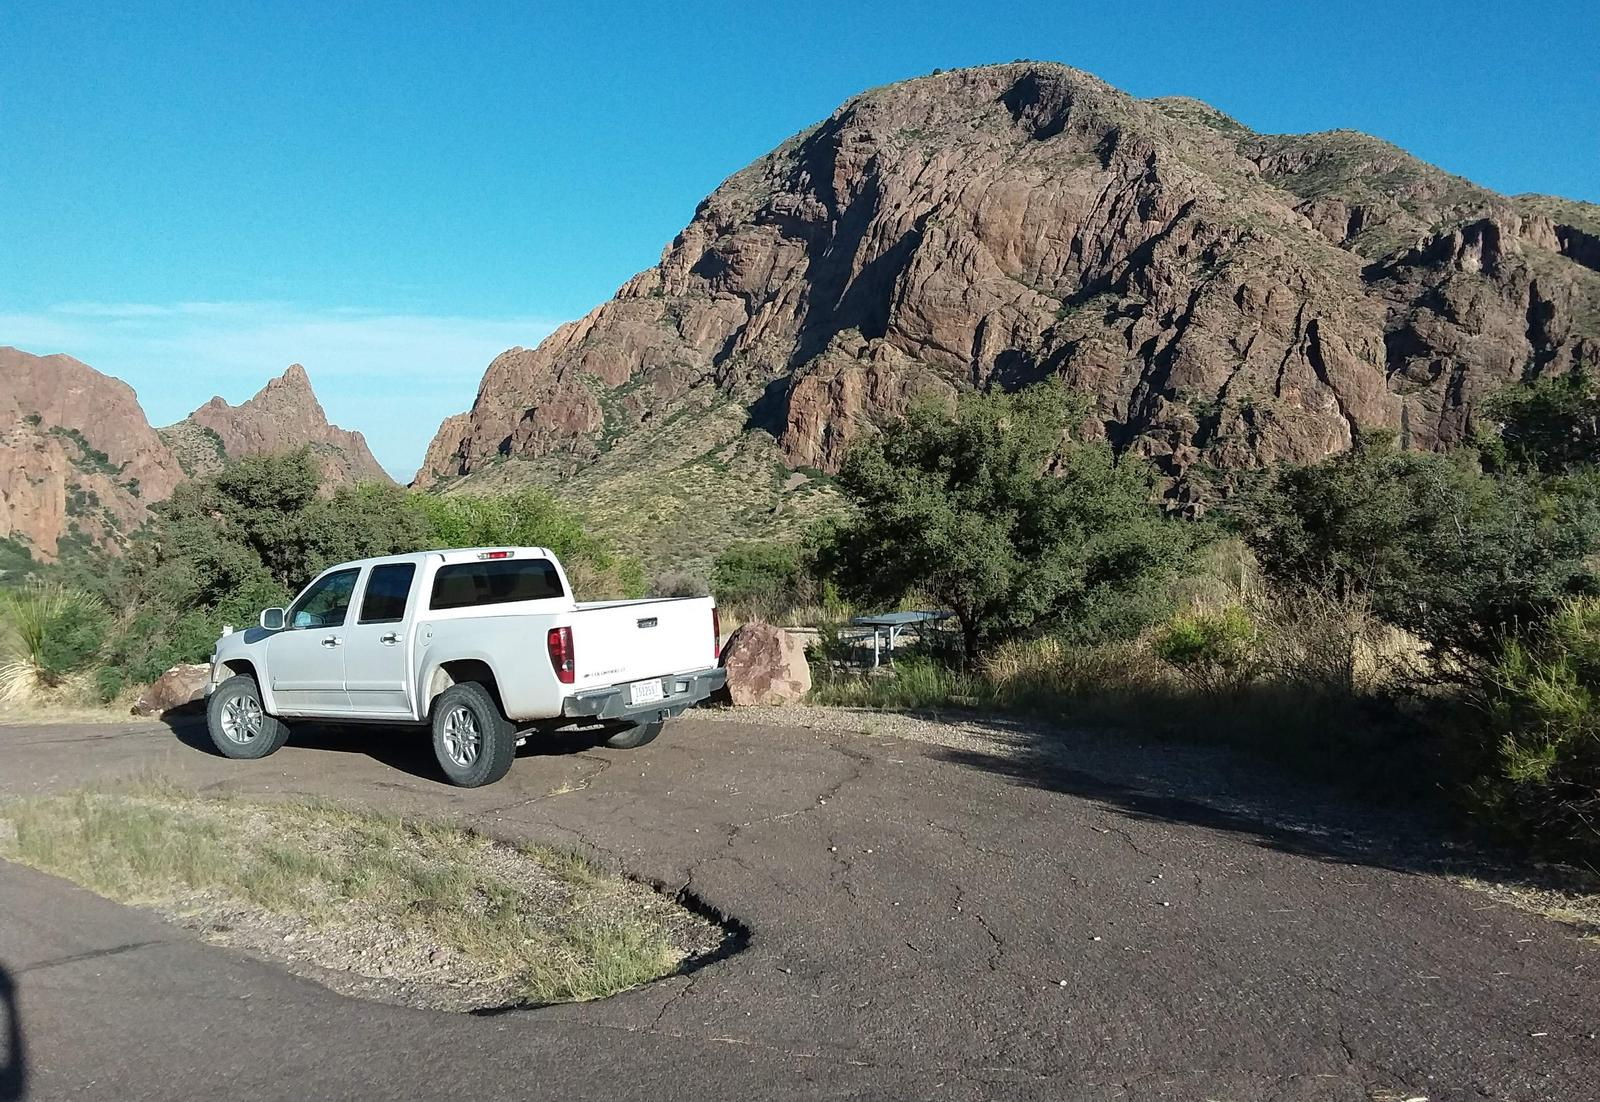 Parking area at site with mountains in the backgroundParking area